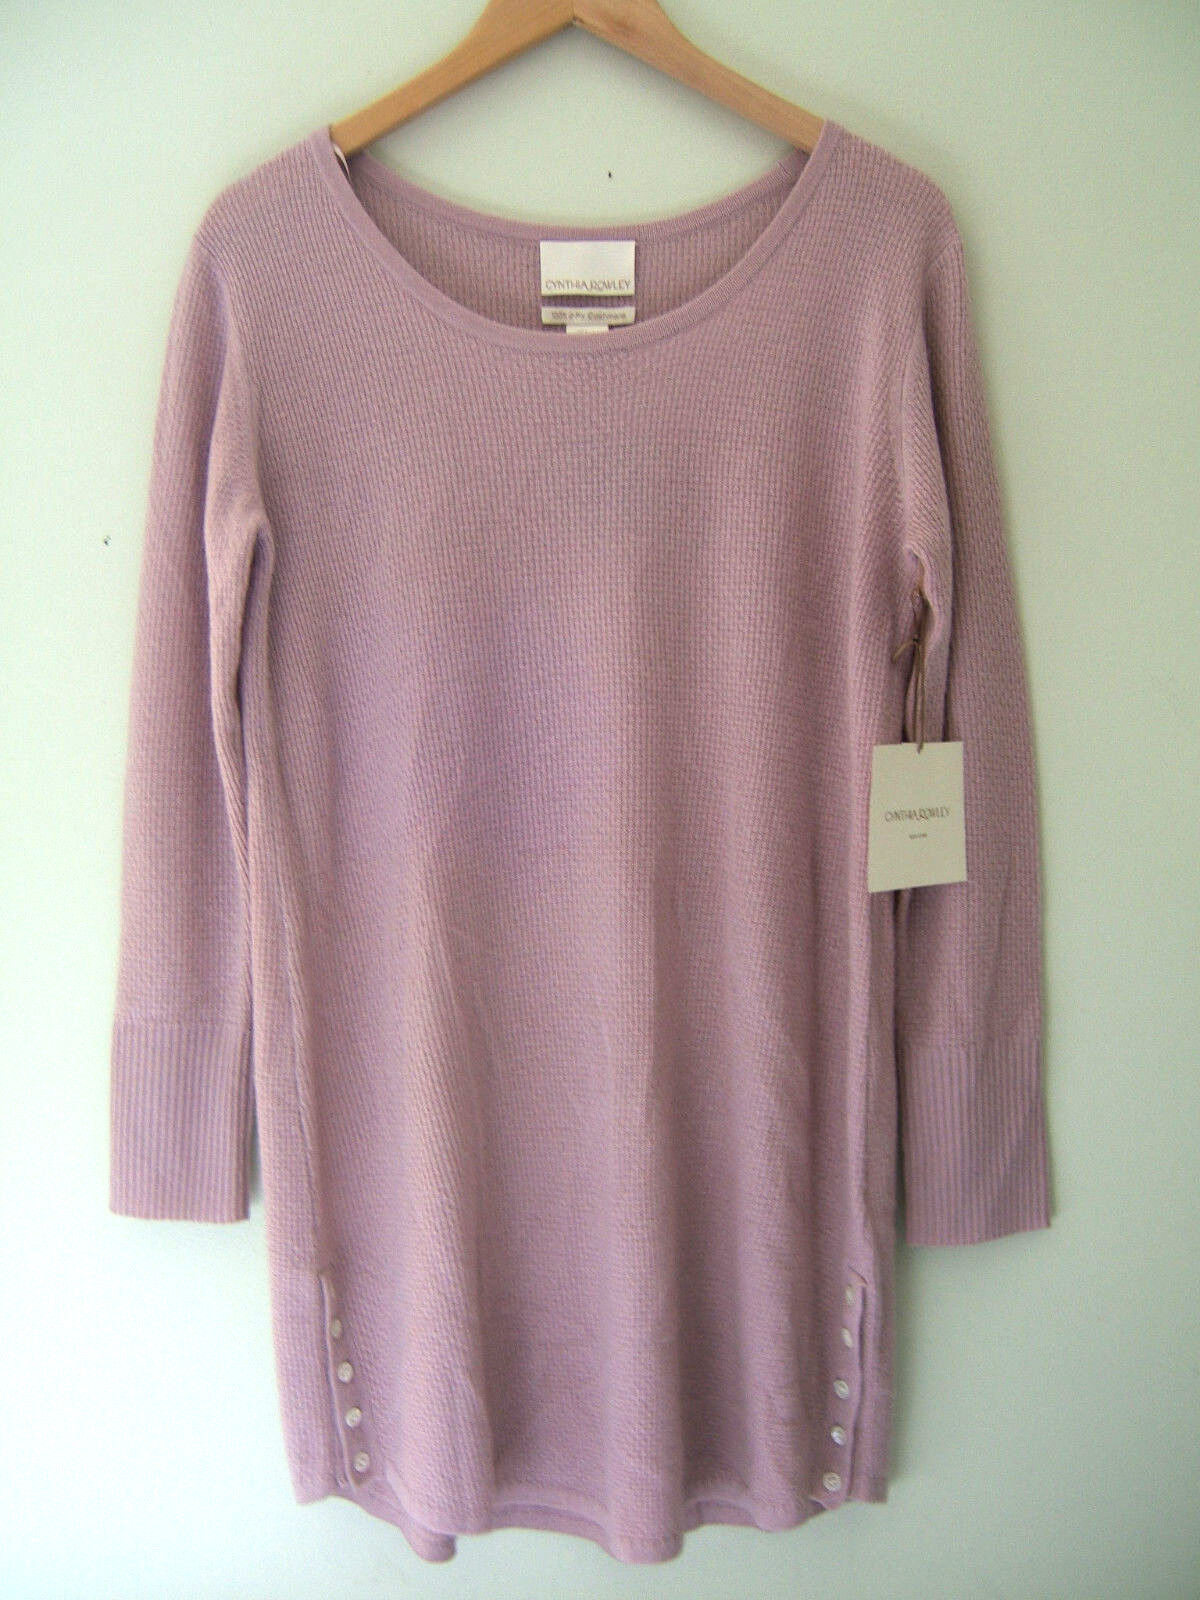 NWT Cynthia Rowley New York 100% Cashmere Luxurious Lounge Mauve Sweater L  260